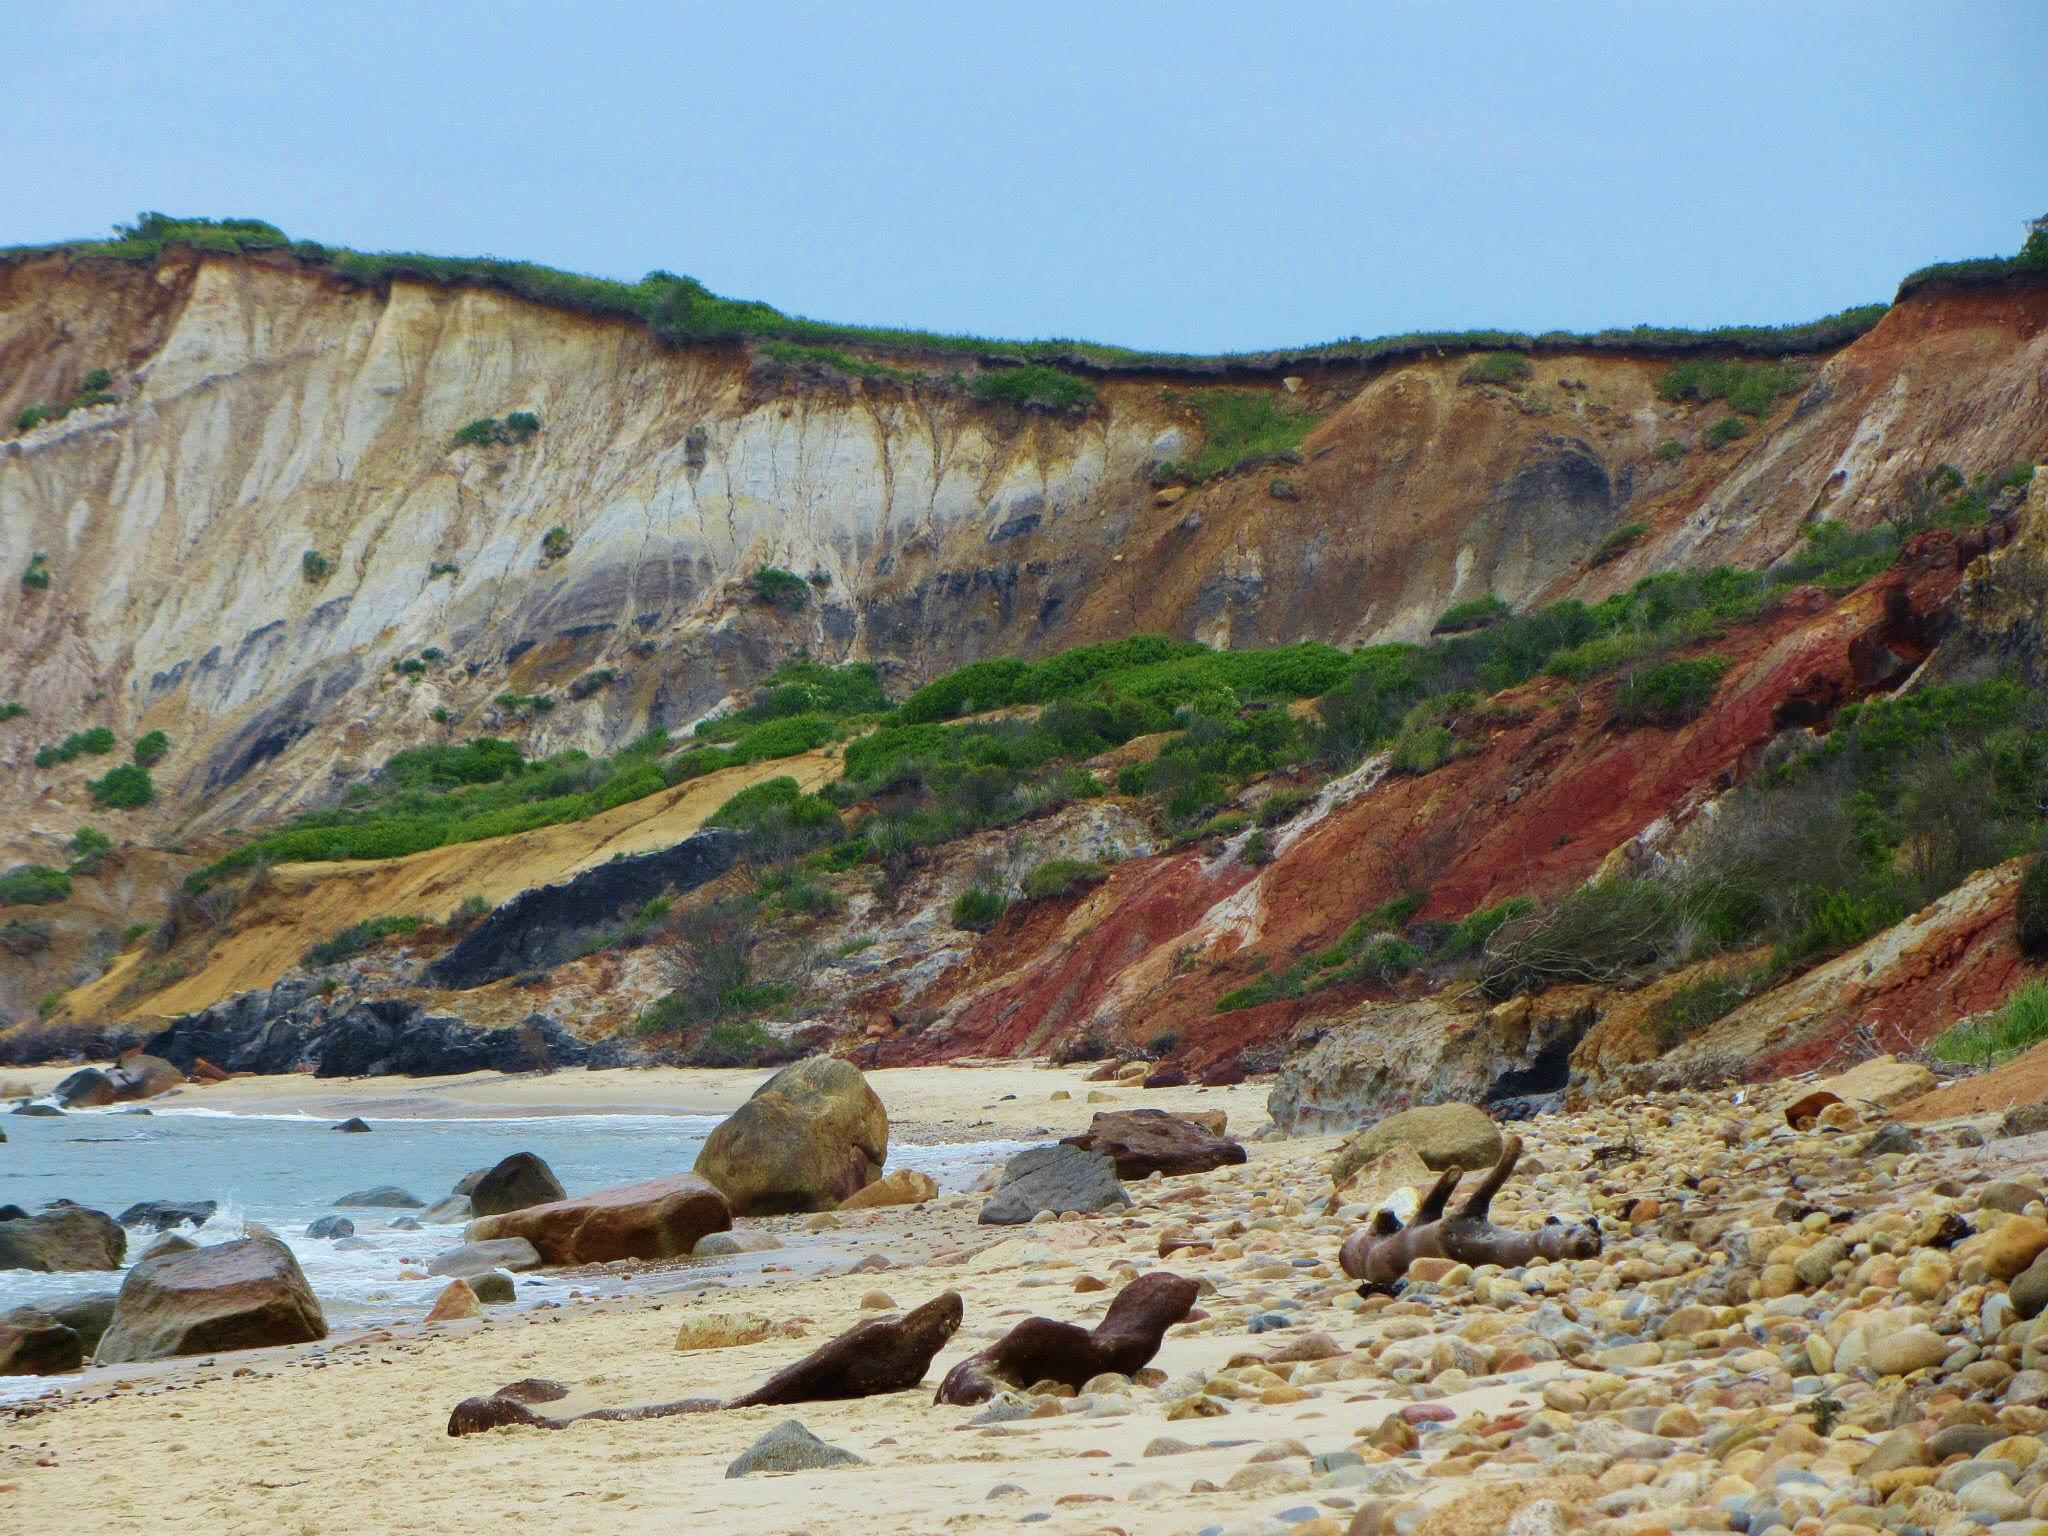 Colorful clay cliffs of Aquinnah by Cindy Romero